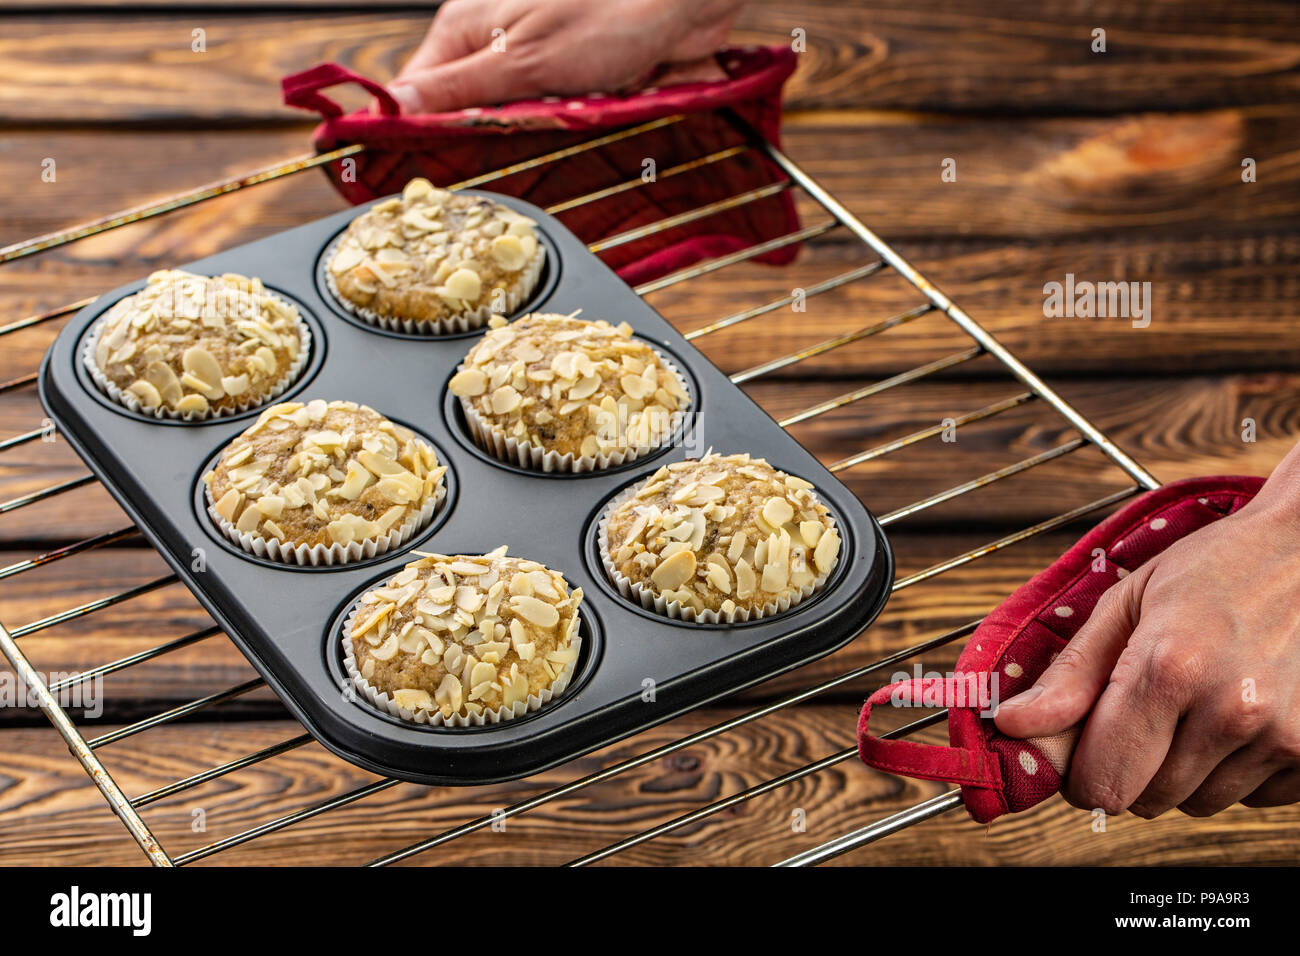 Carrot cupcakes with lemon and apple, almonds on wooden background, raw silicone form on a baking sheet - Stock Image